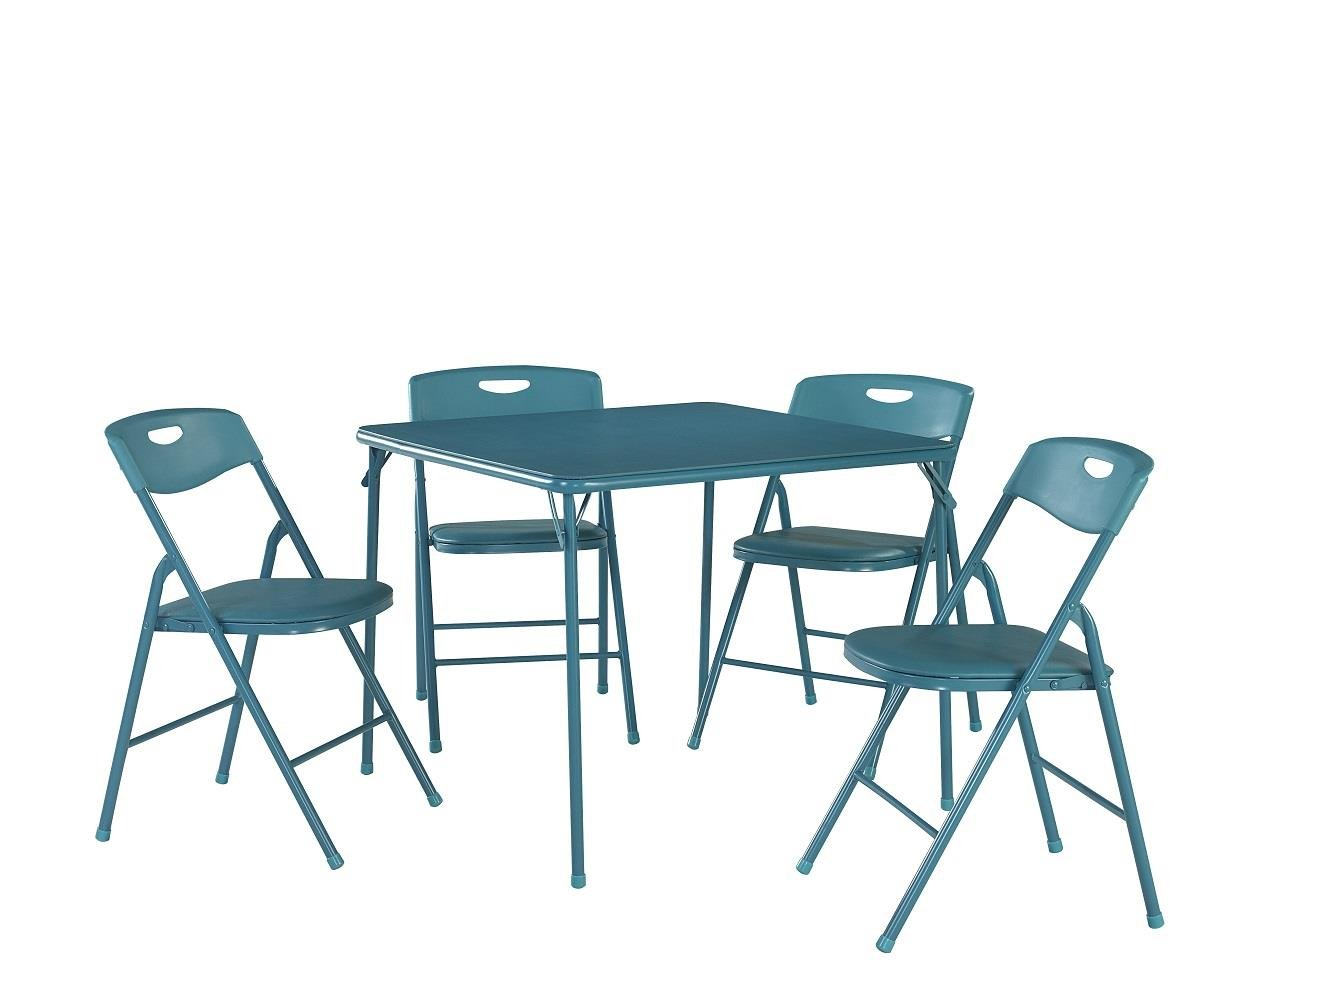 Amazon.com: Cosco 5-Piece Folding Table and Chair Set, Teal: Kitchen ...